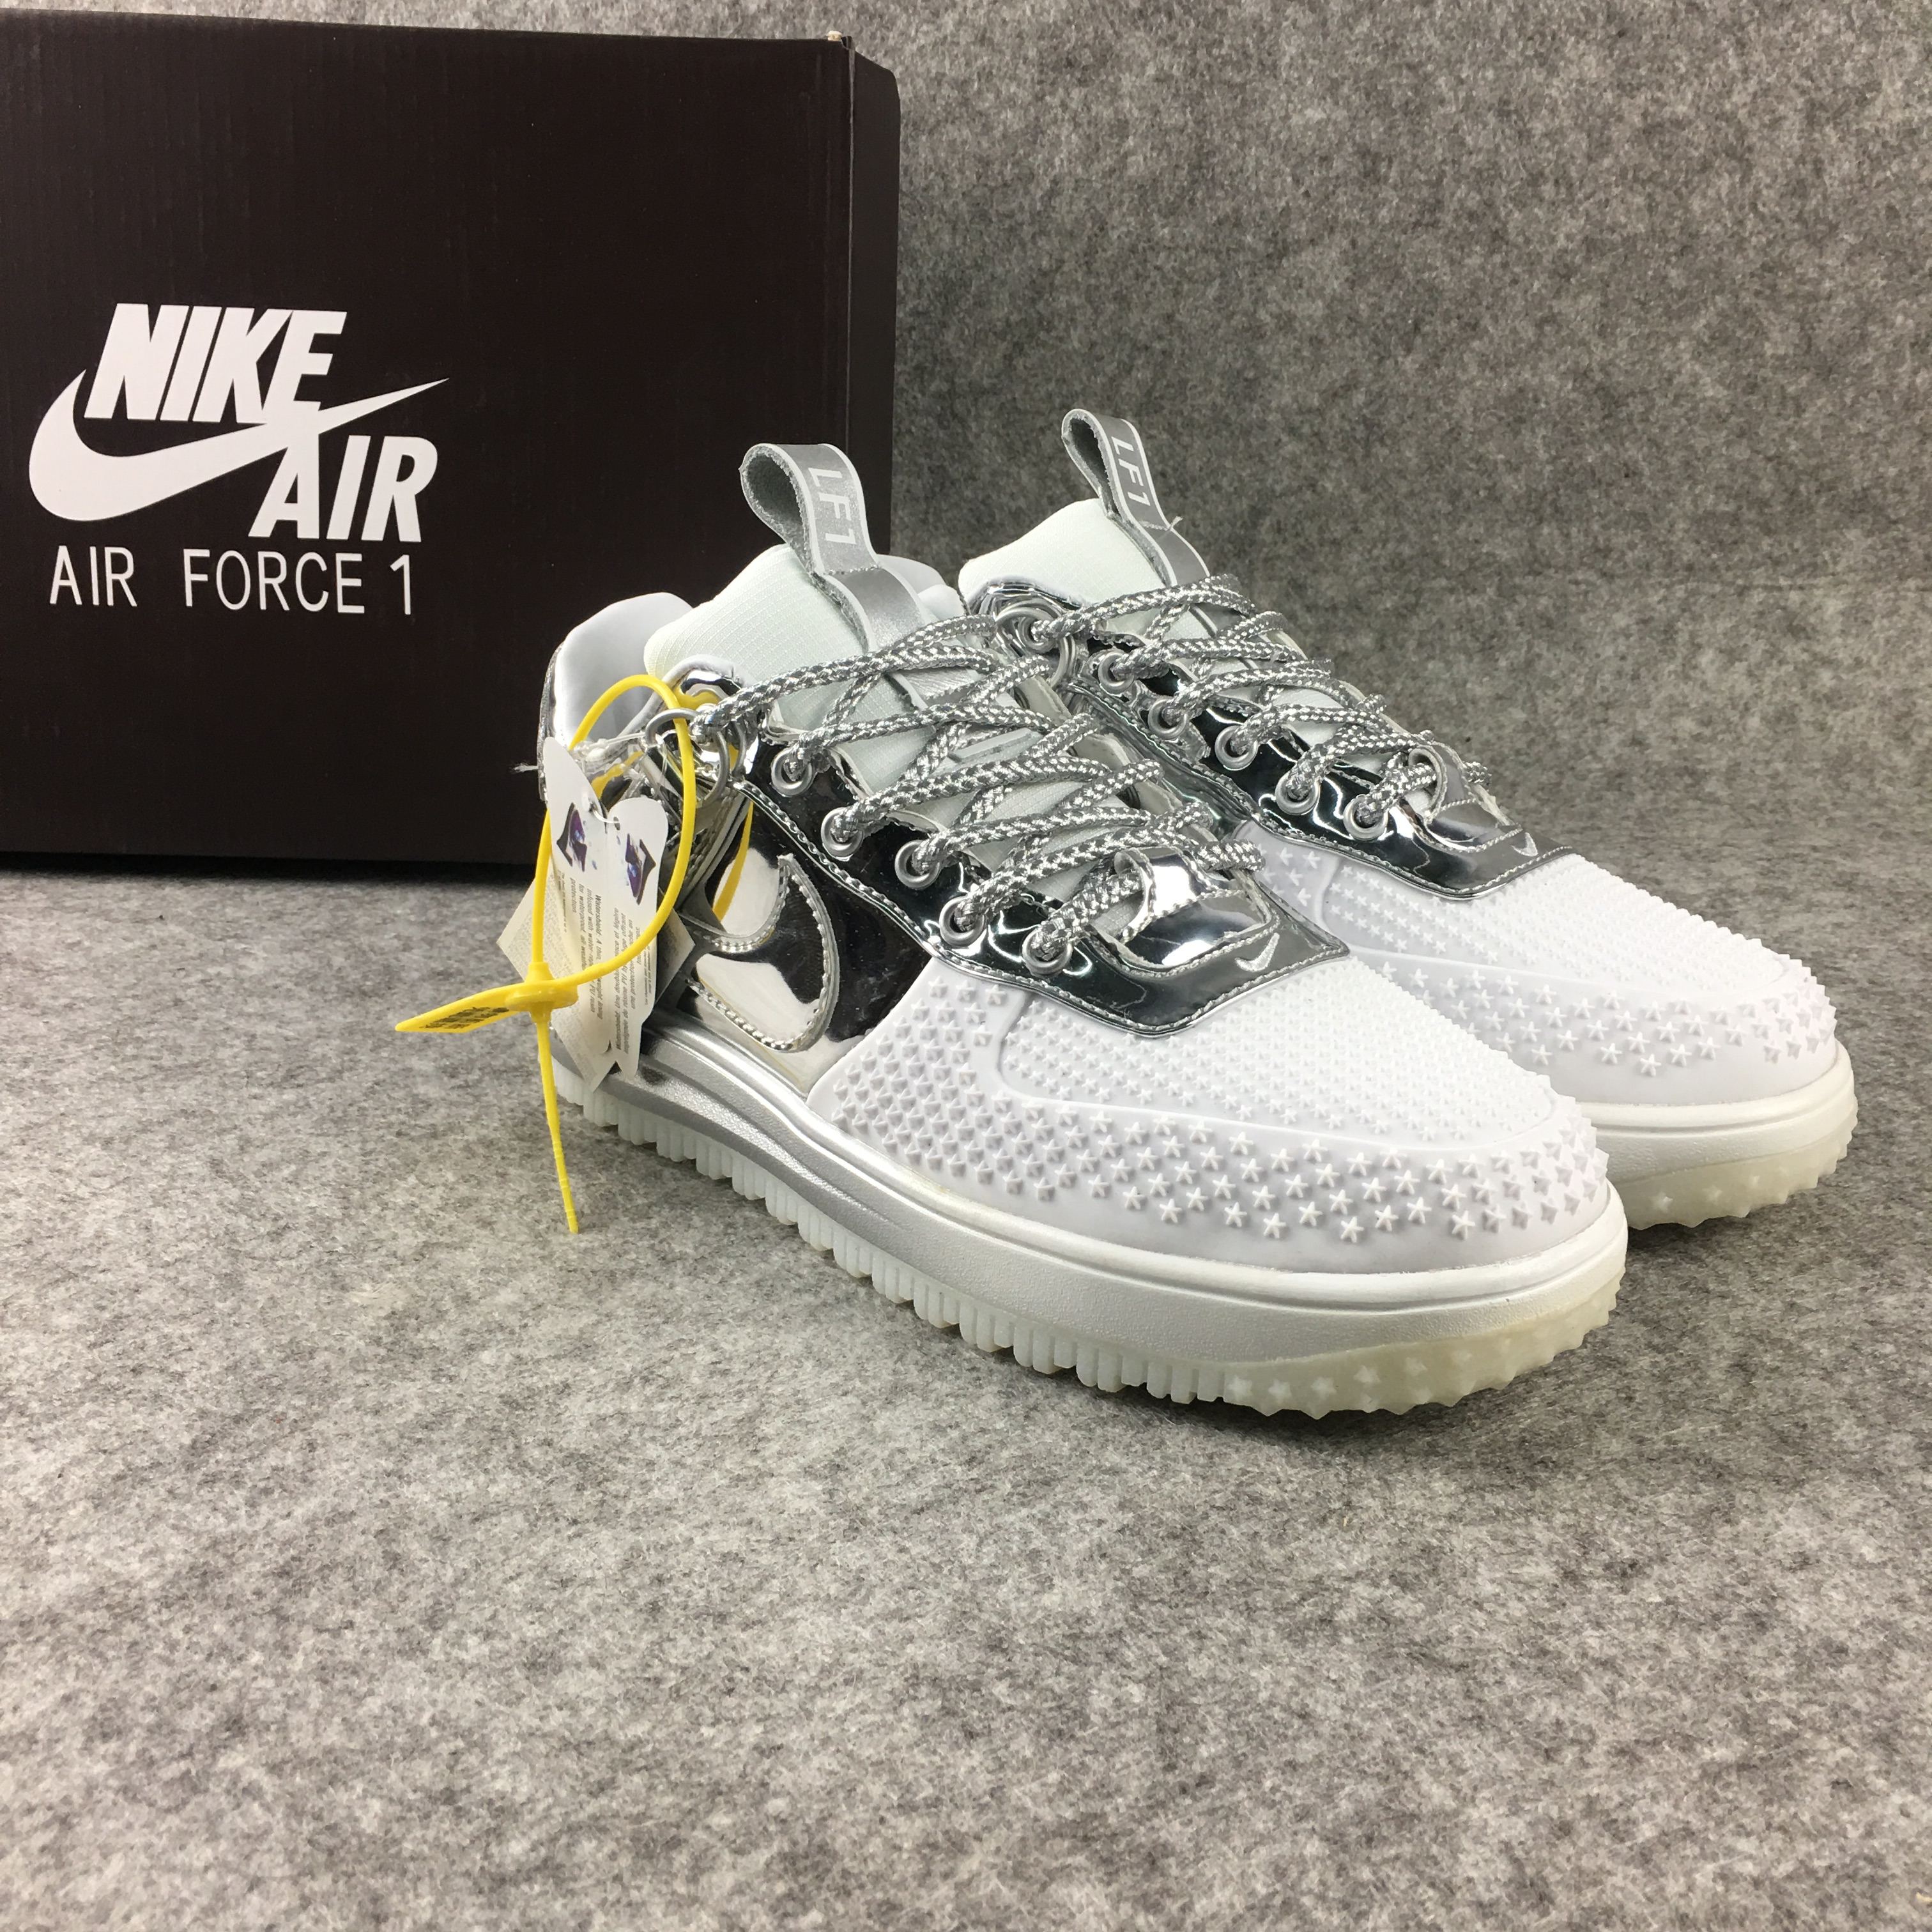 2018 Nike Lunar Force 1 Low Silver White